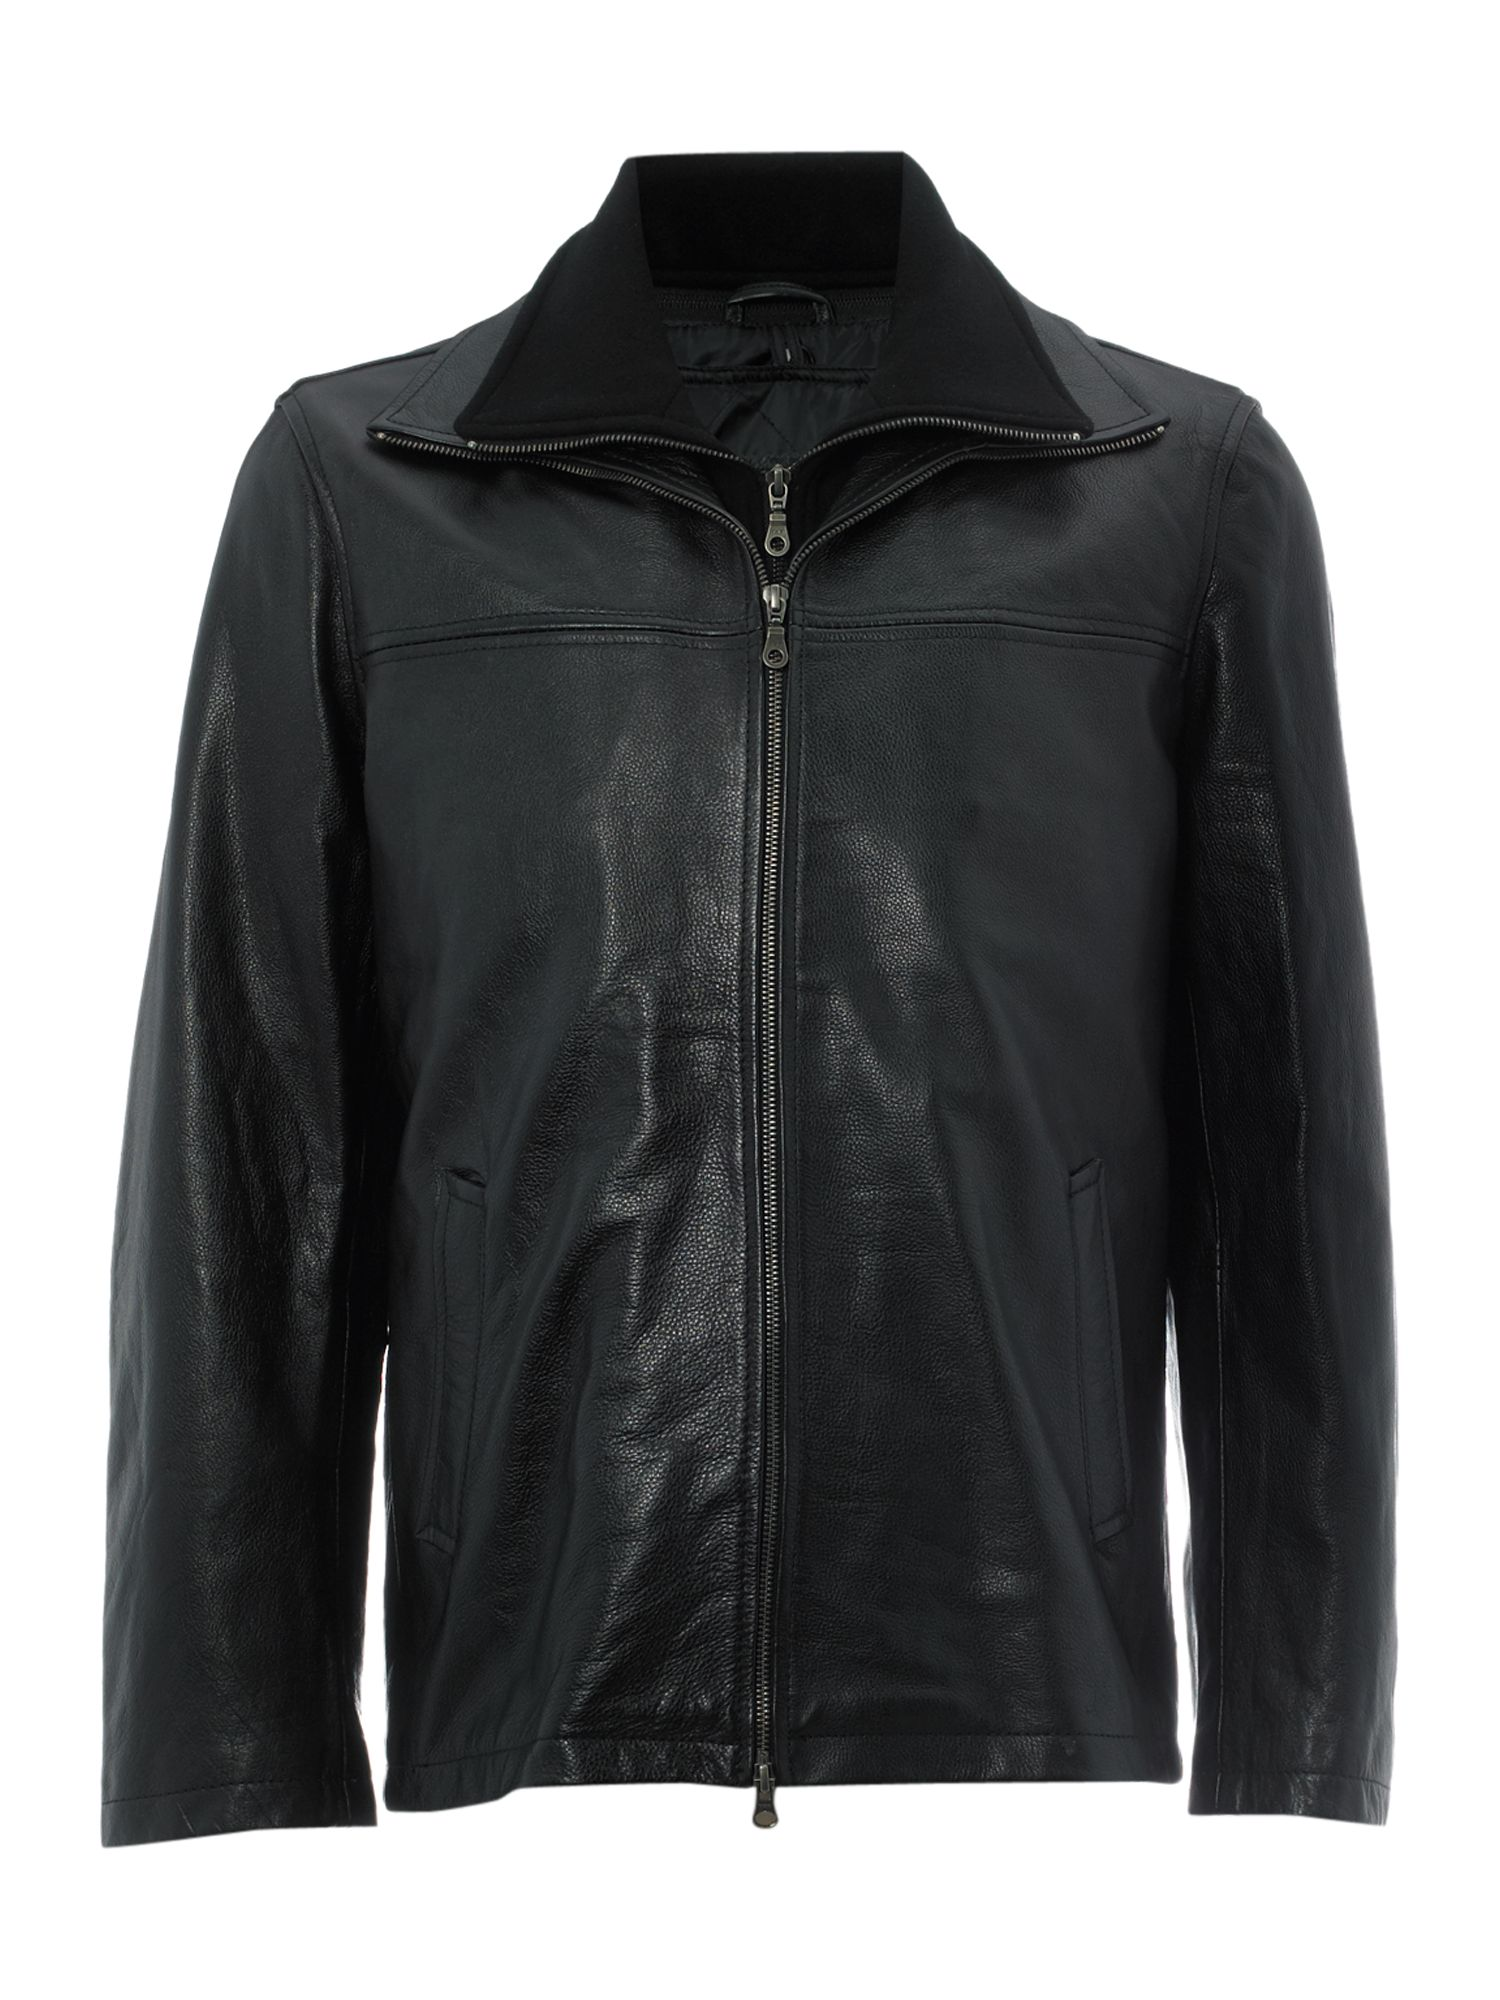 Leather jacket reviews 5